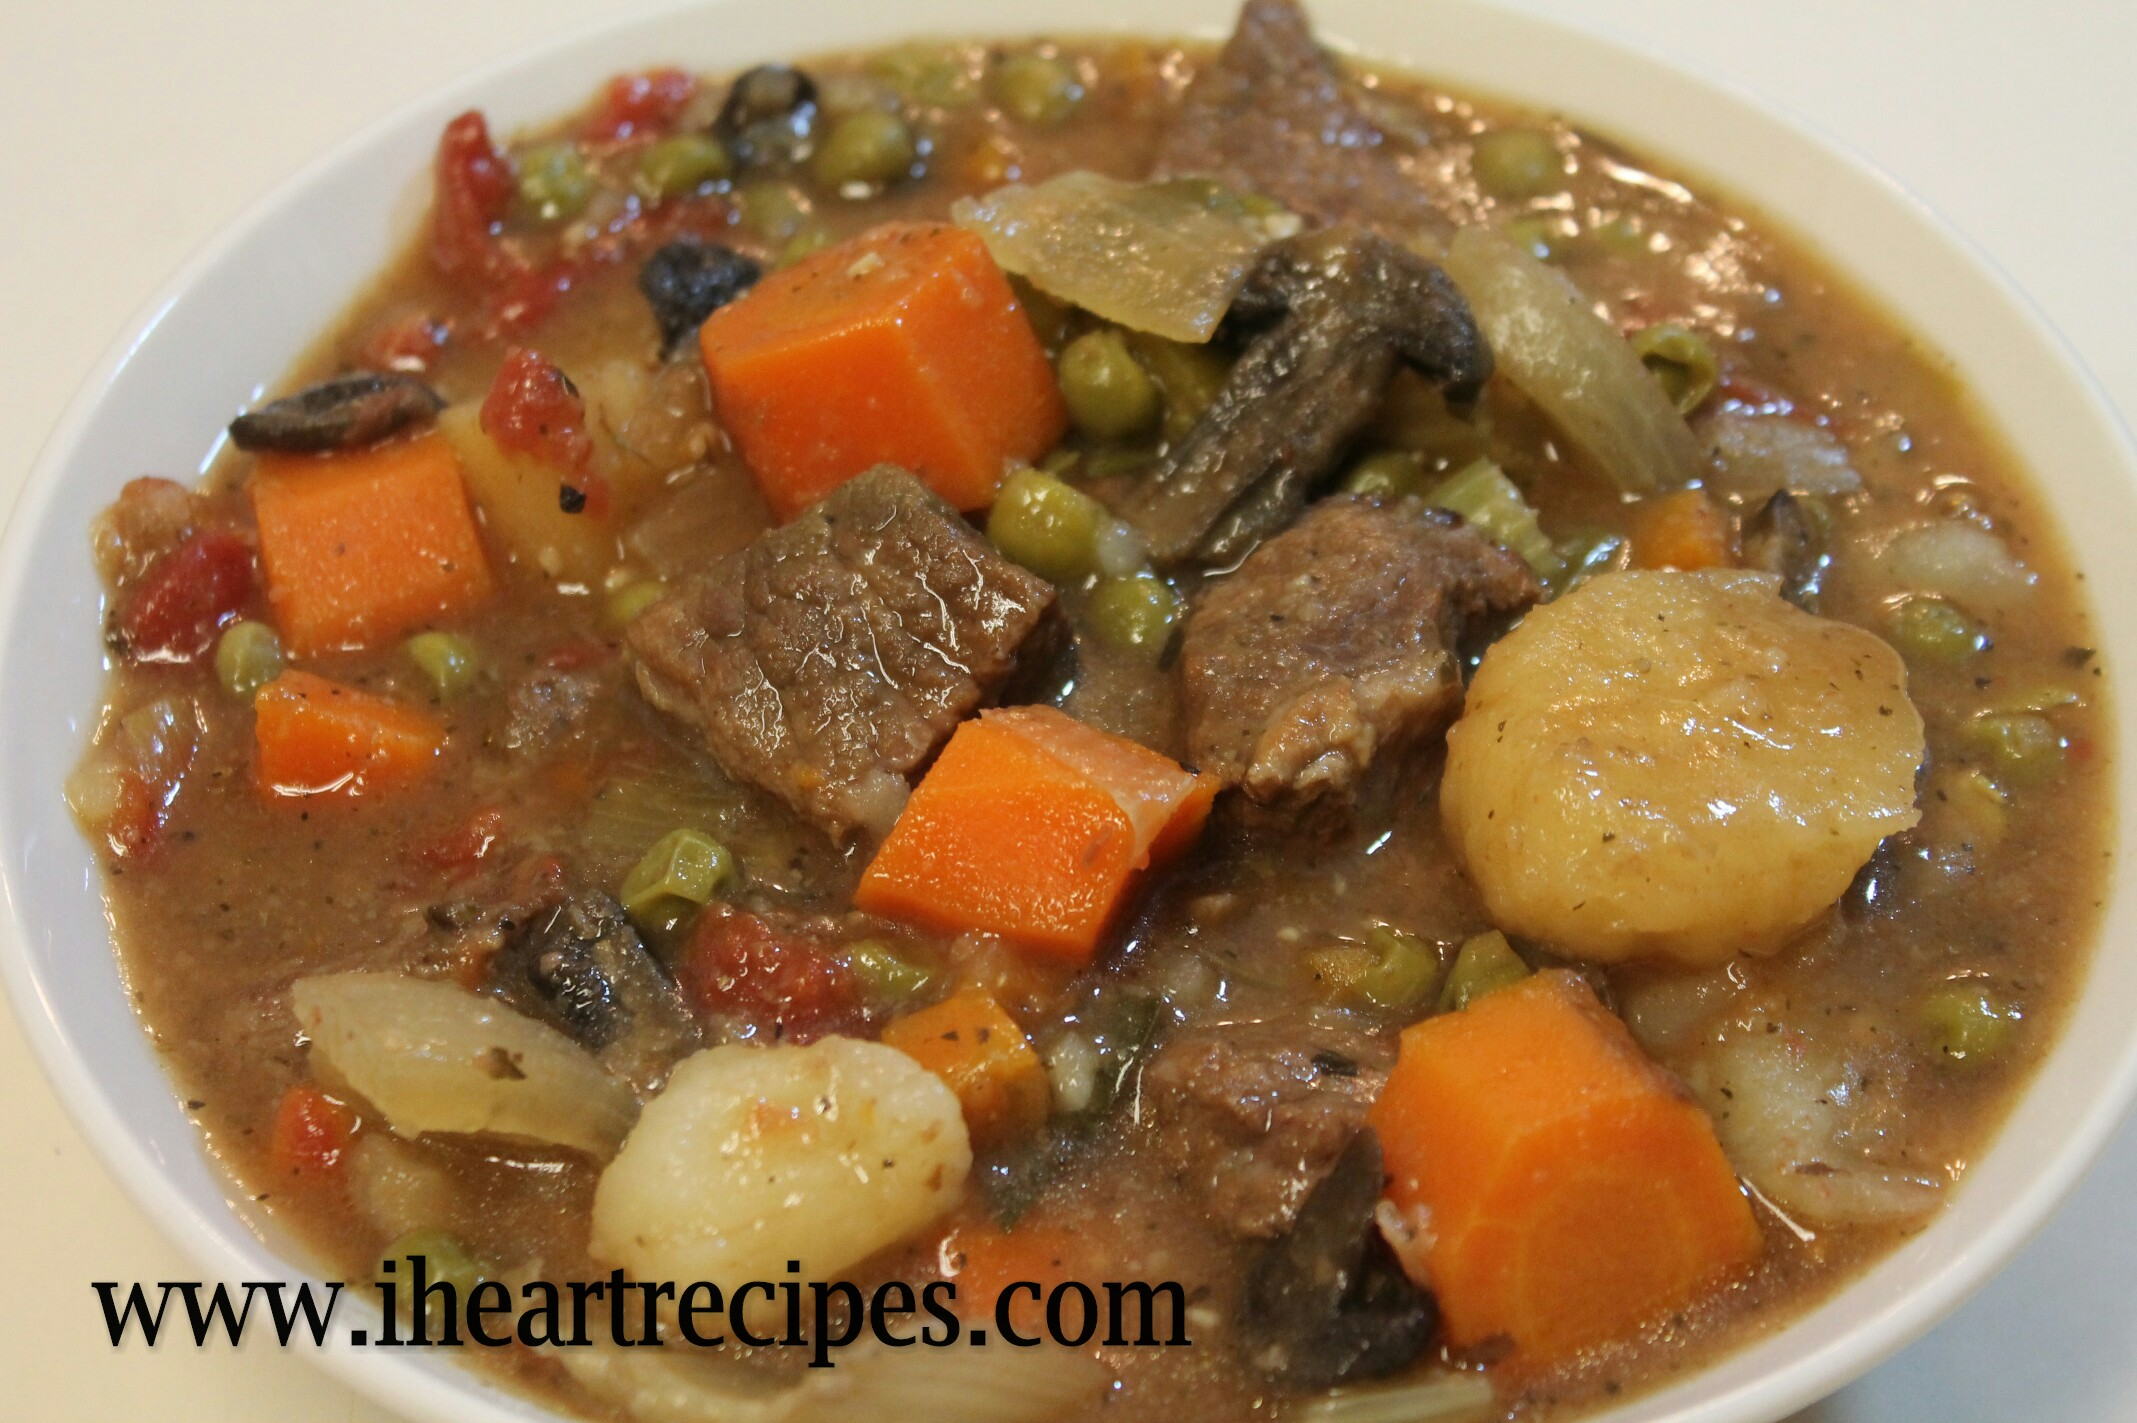 A bowlful of hearty crock pot beef stew